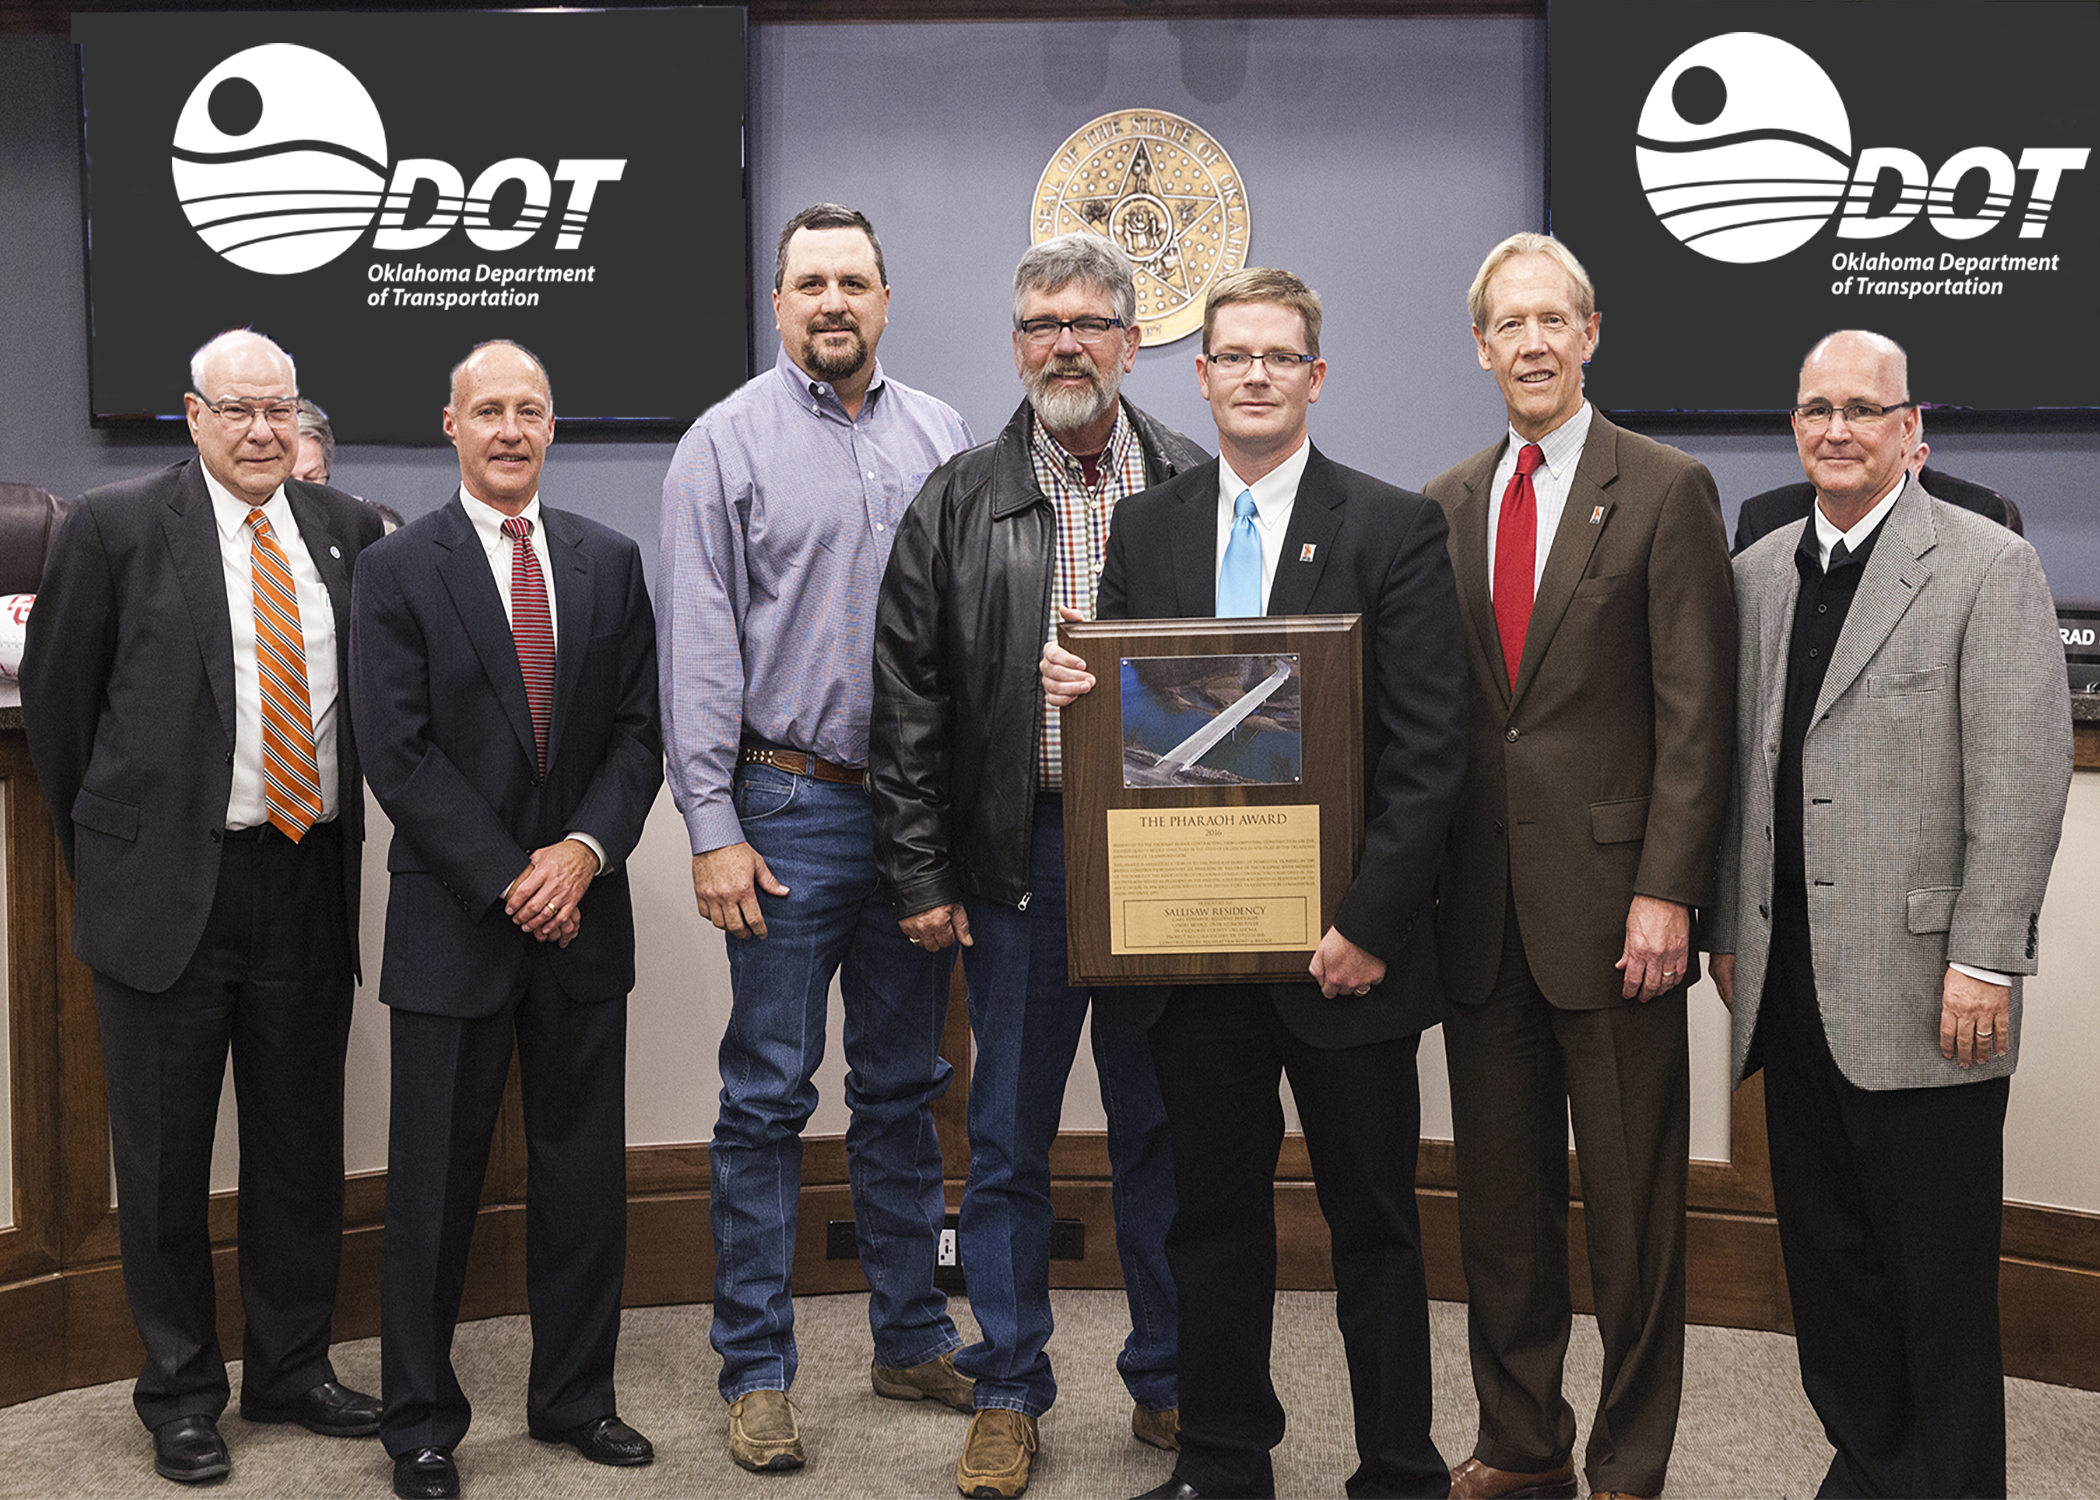 ODOT engineers recognized for award-winning bridge project